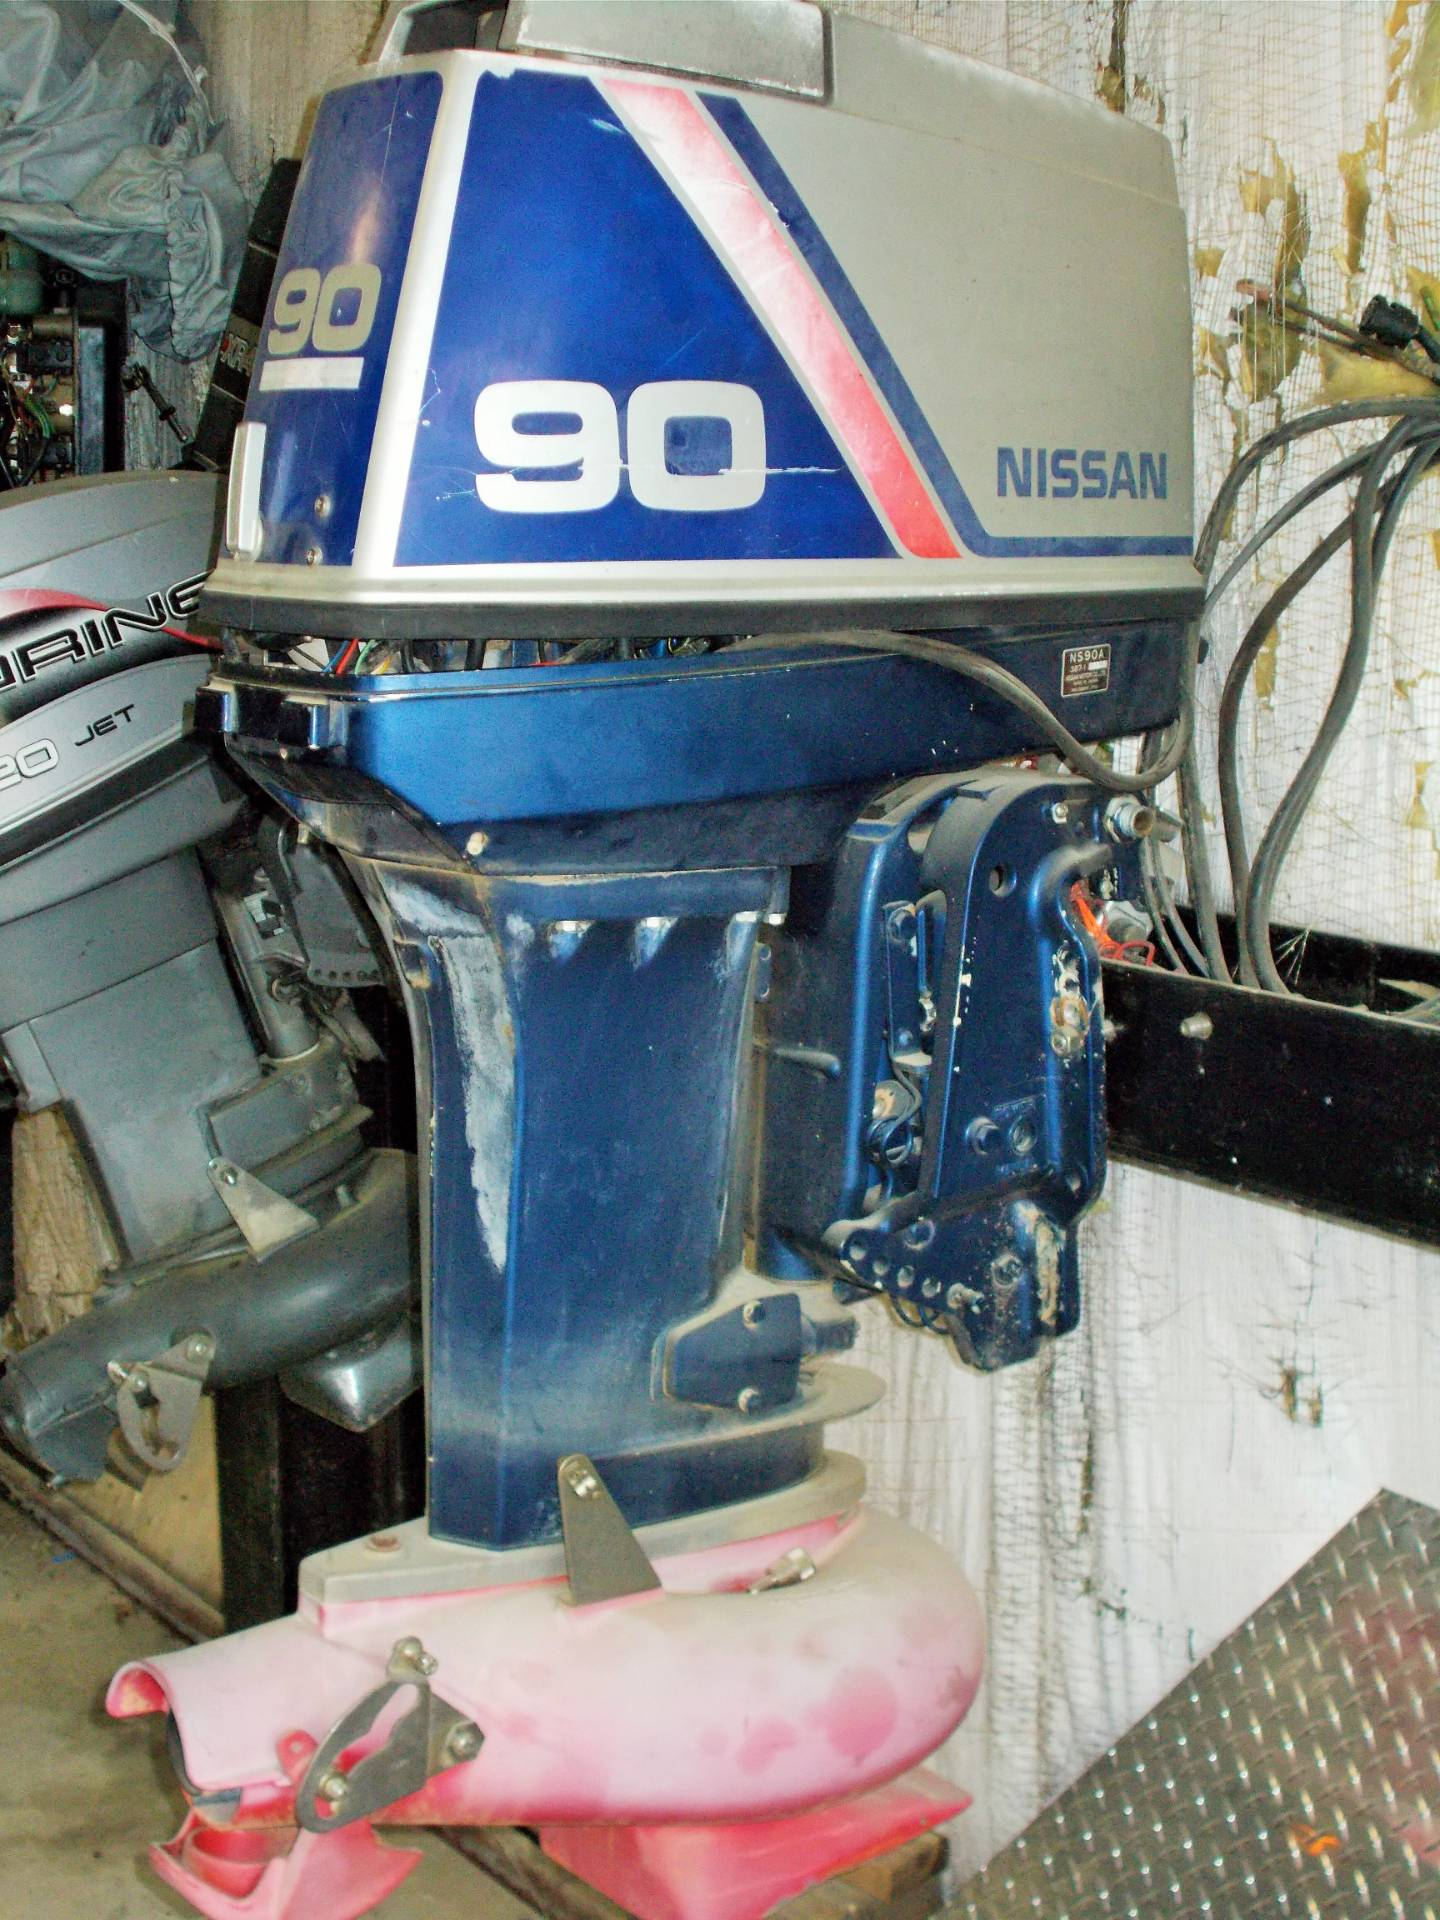 1993 Nissan 90 JET-PARTS ONLY MOTOR in West Plains, Missouri - Photo 2